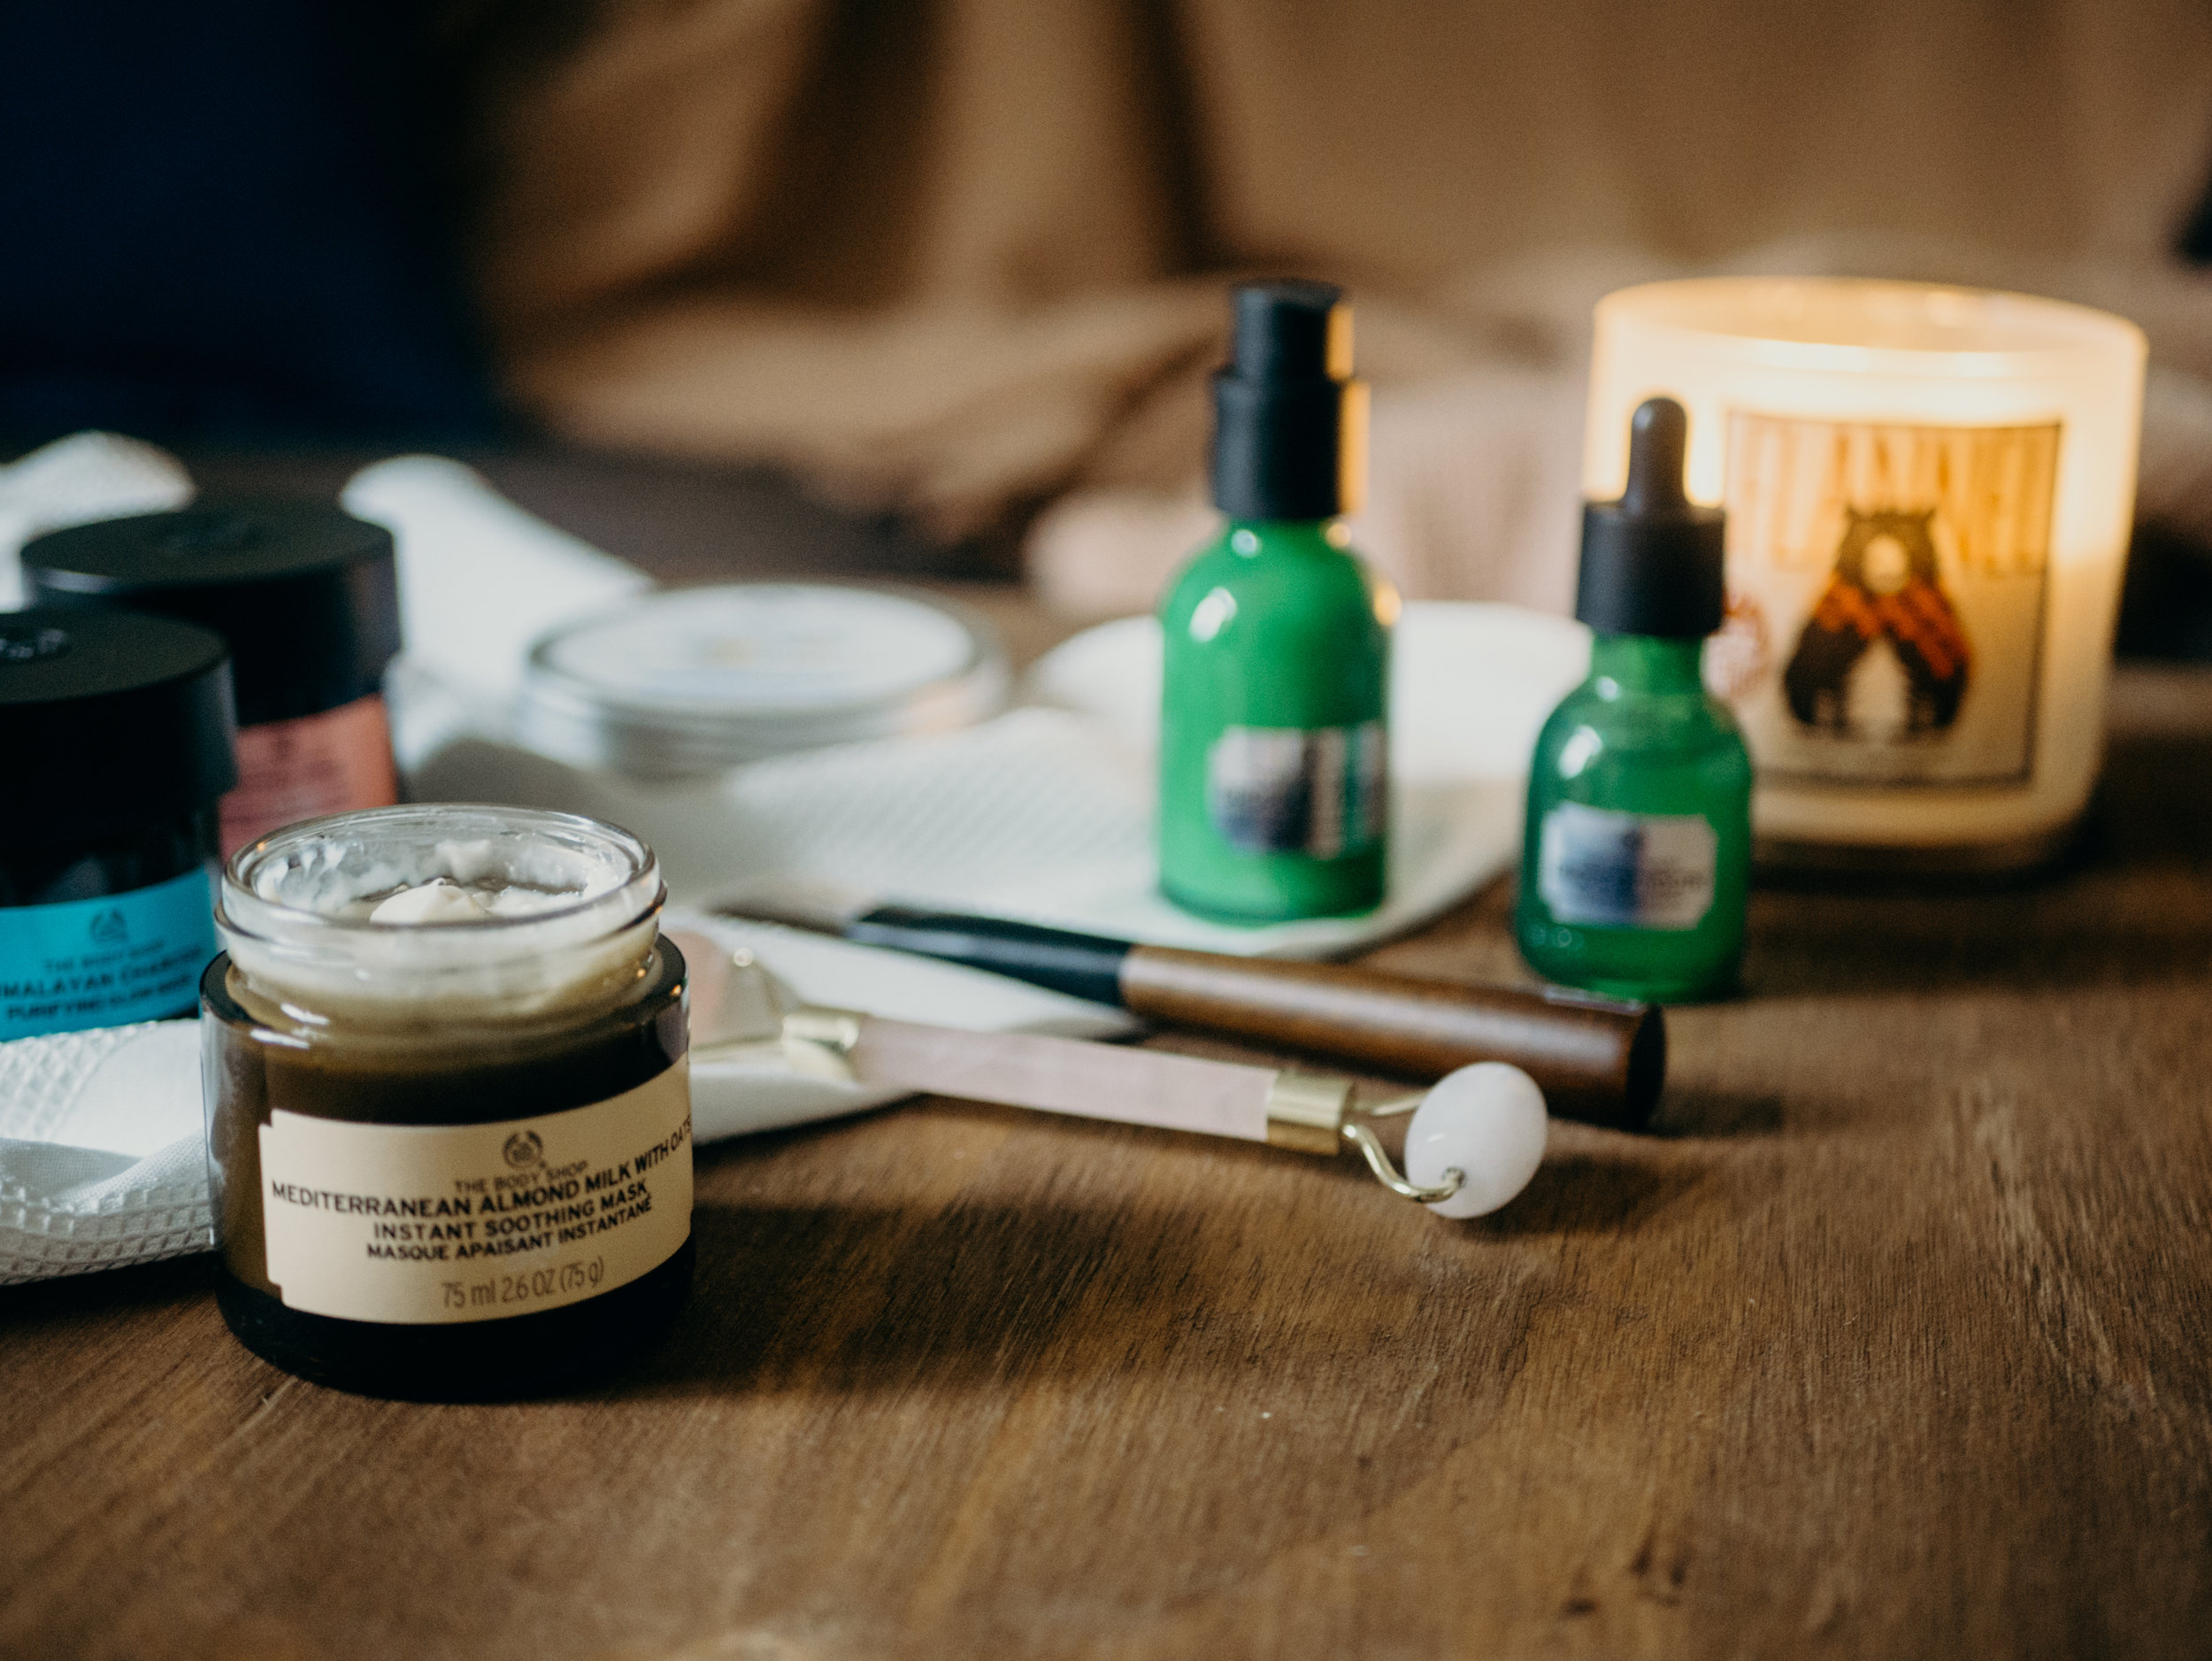 DIY At Home Spa Night - Everything you need to treat yourself at home